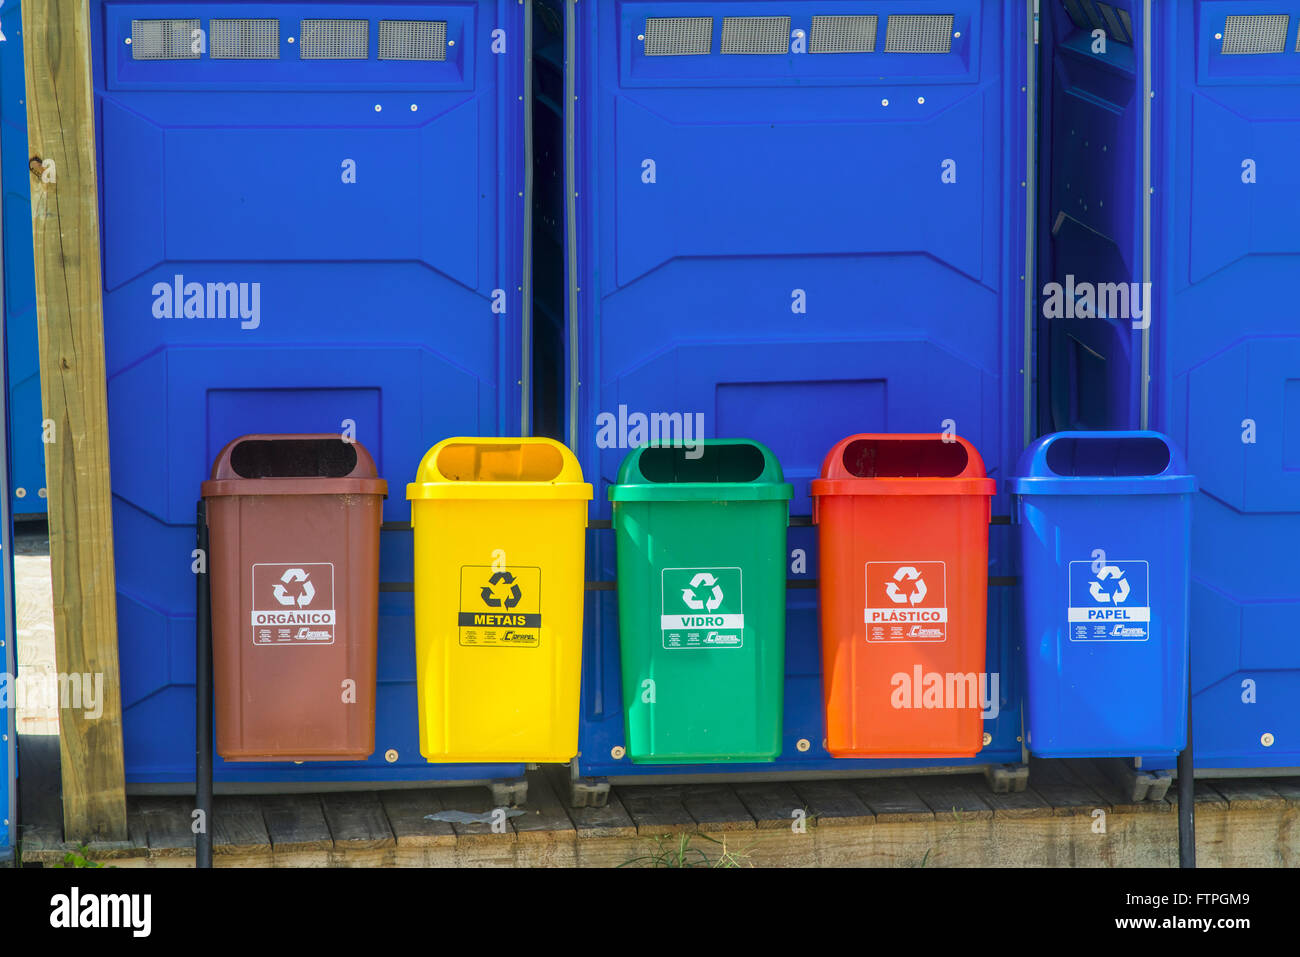 Bins identified for separation of garbage in Santinho Beach - Stock Image